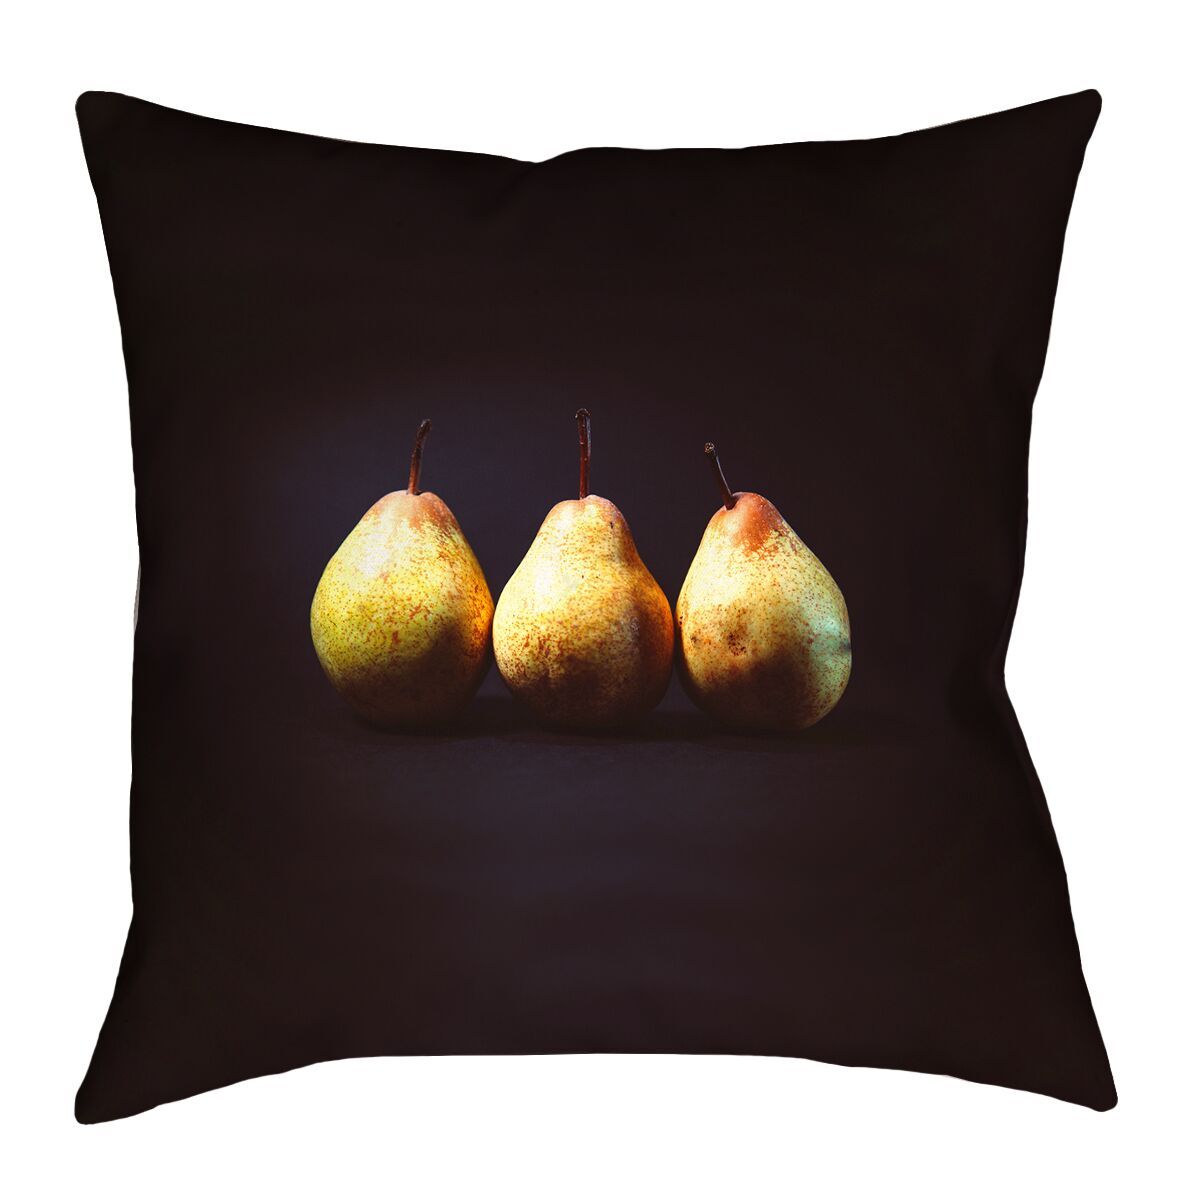 Pears 100% Cotton Euro Pillow